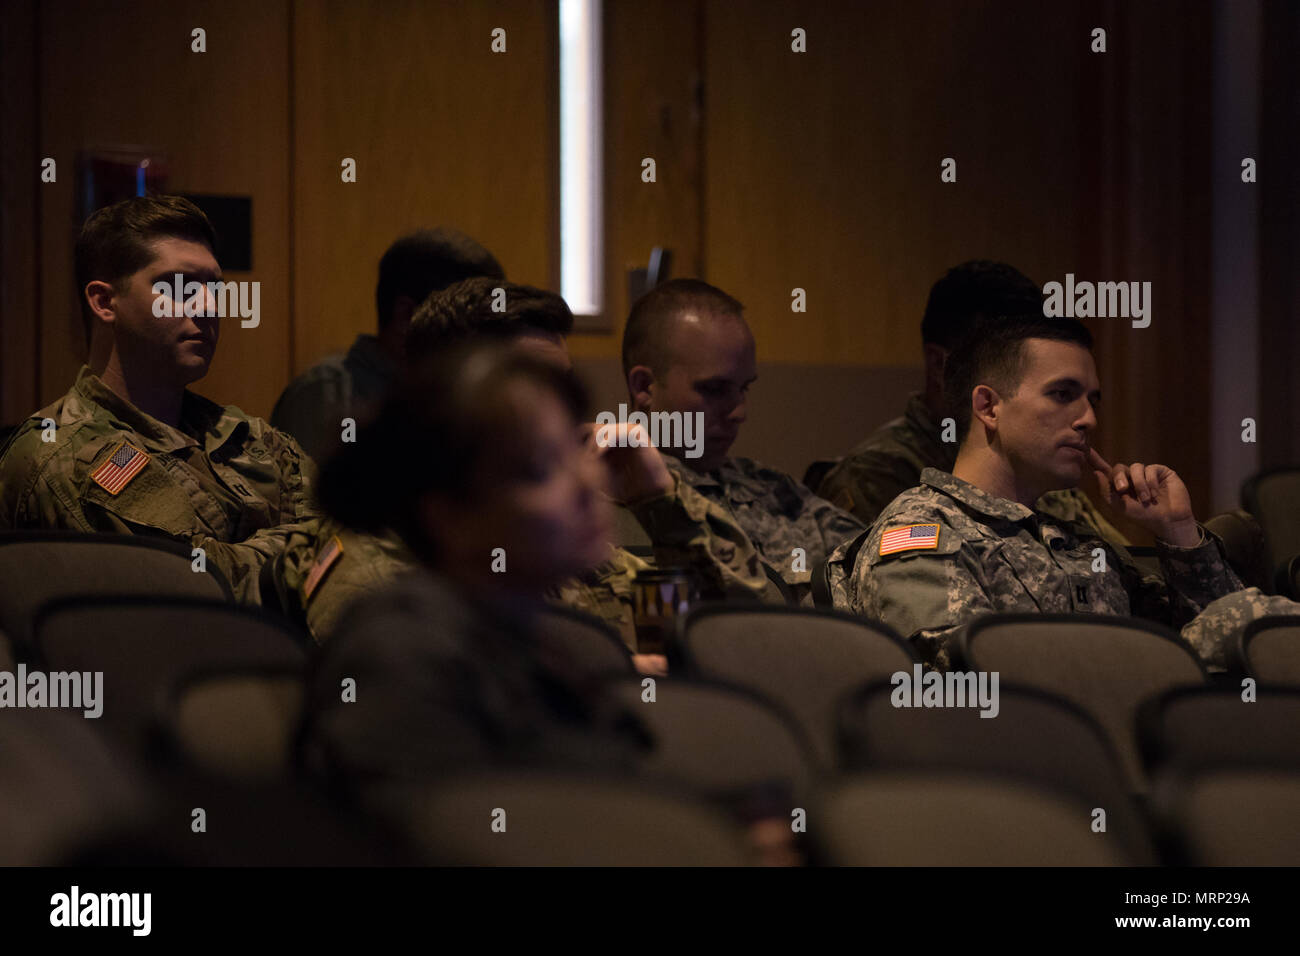 Army Dentists Stock Photos & Army Dentists Stock Images - Alamy